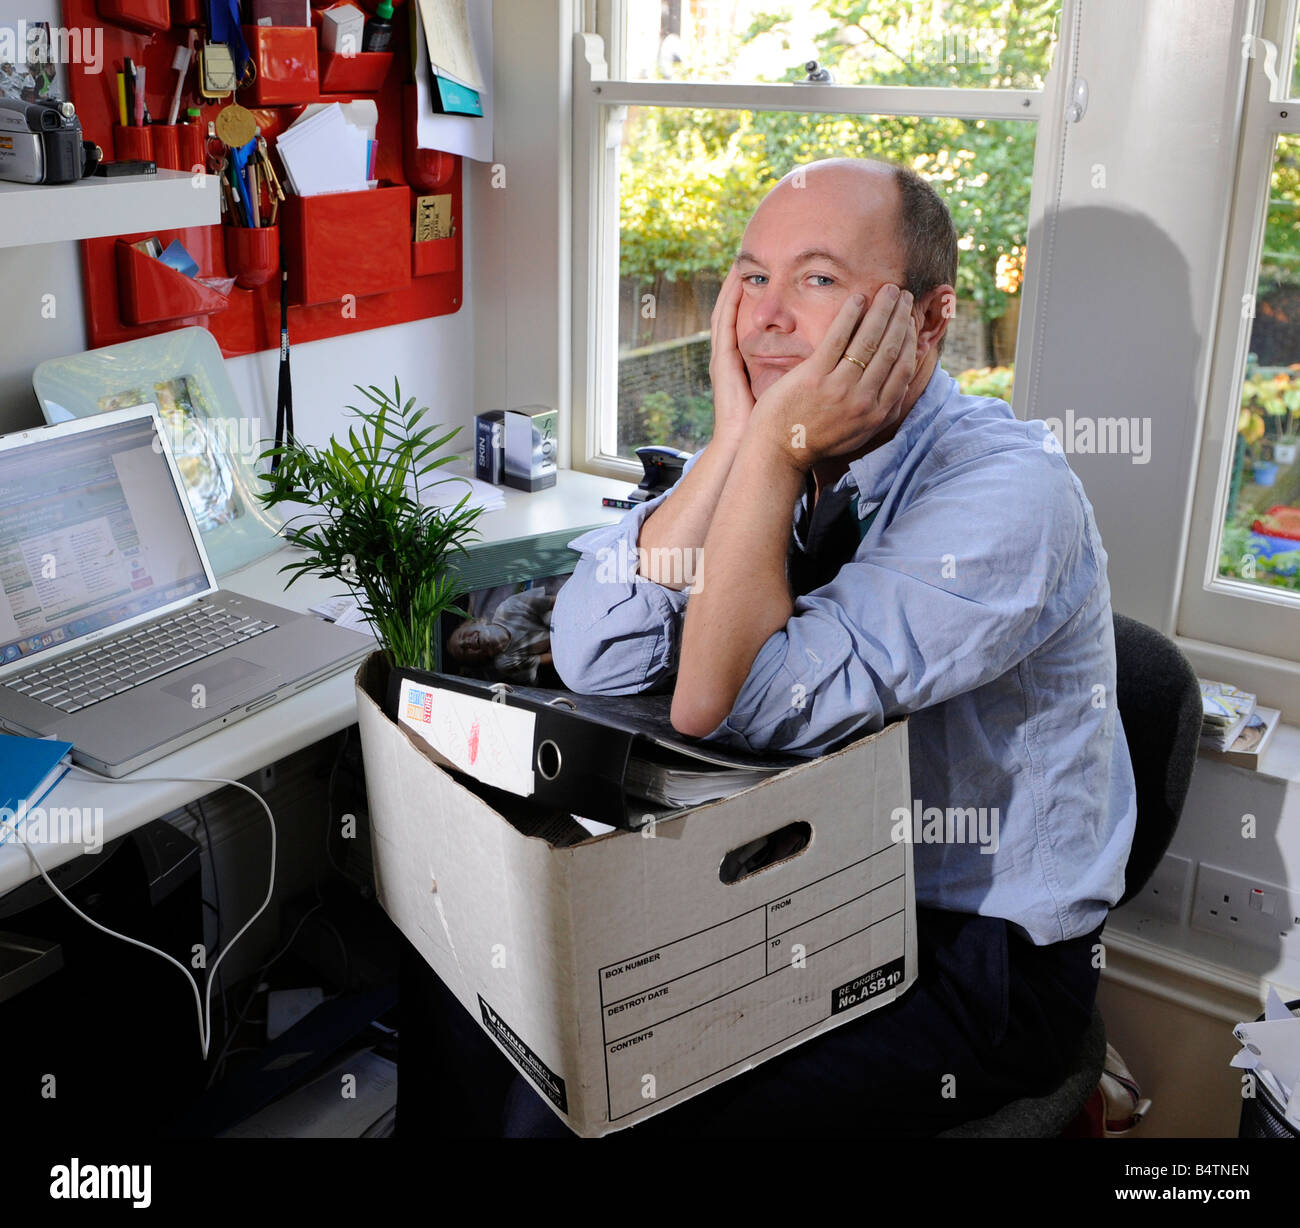 Sad and worried man packs up his desk and belongings after losing his job, being made redundant, being fired Stock Photo